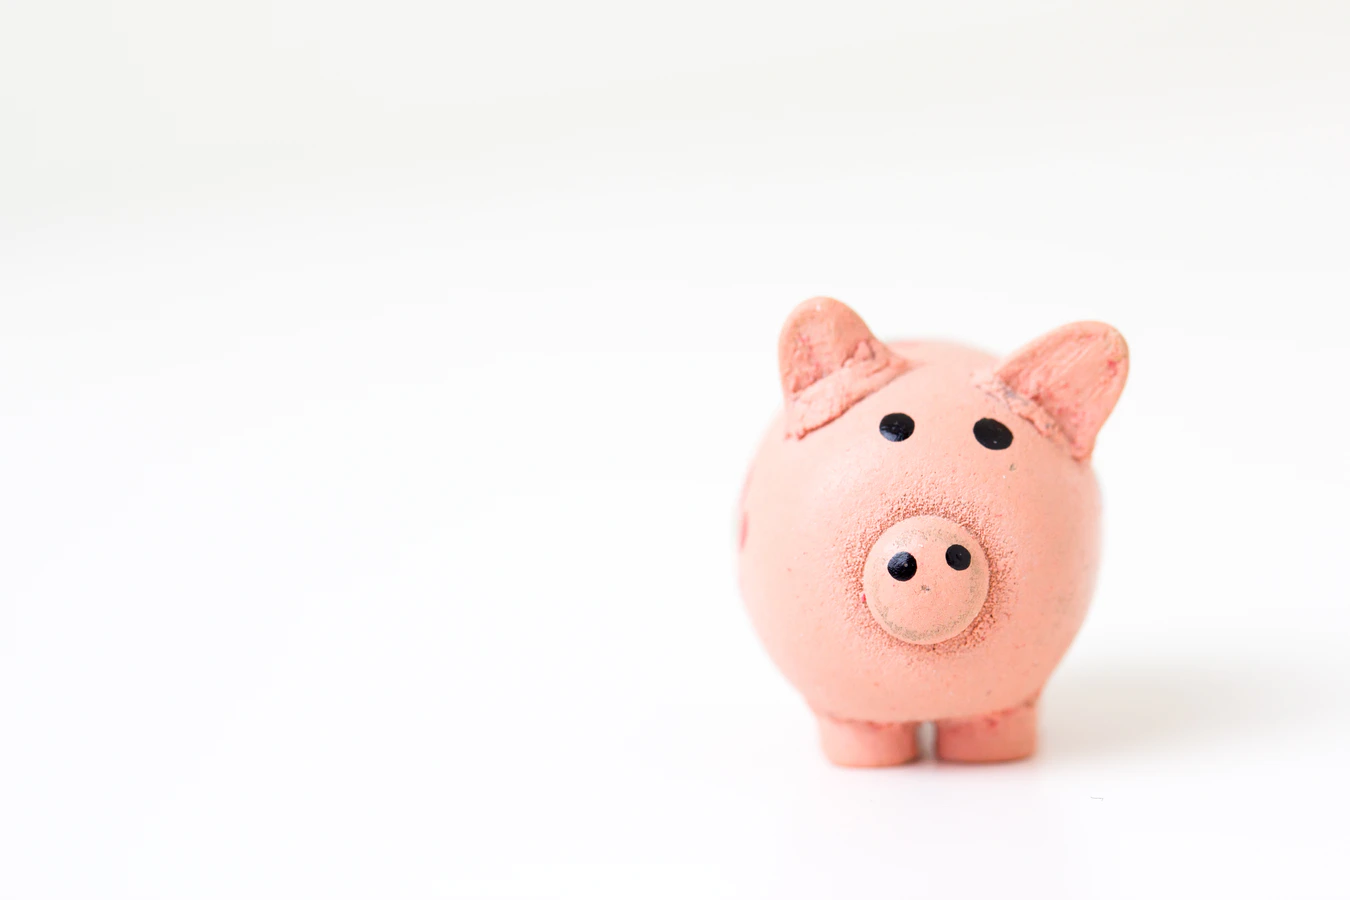 piggy bank to illustrate virtual fundraising